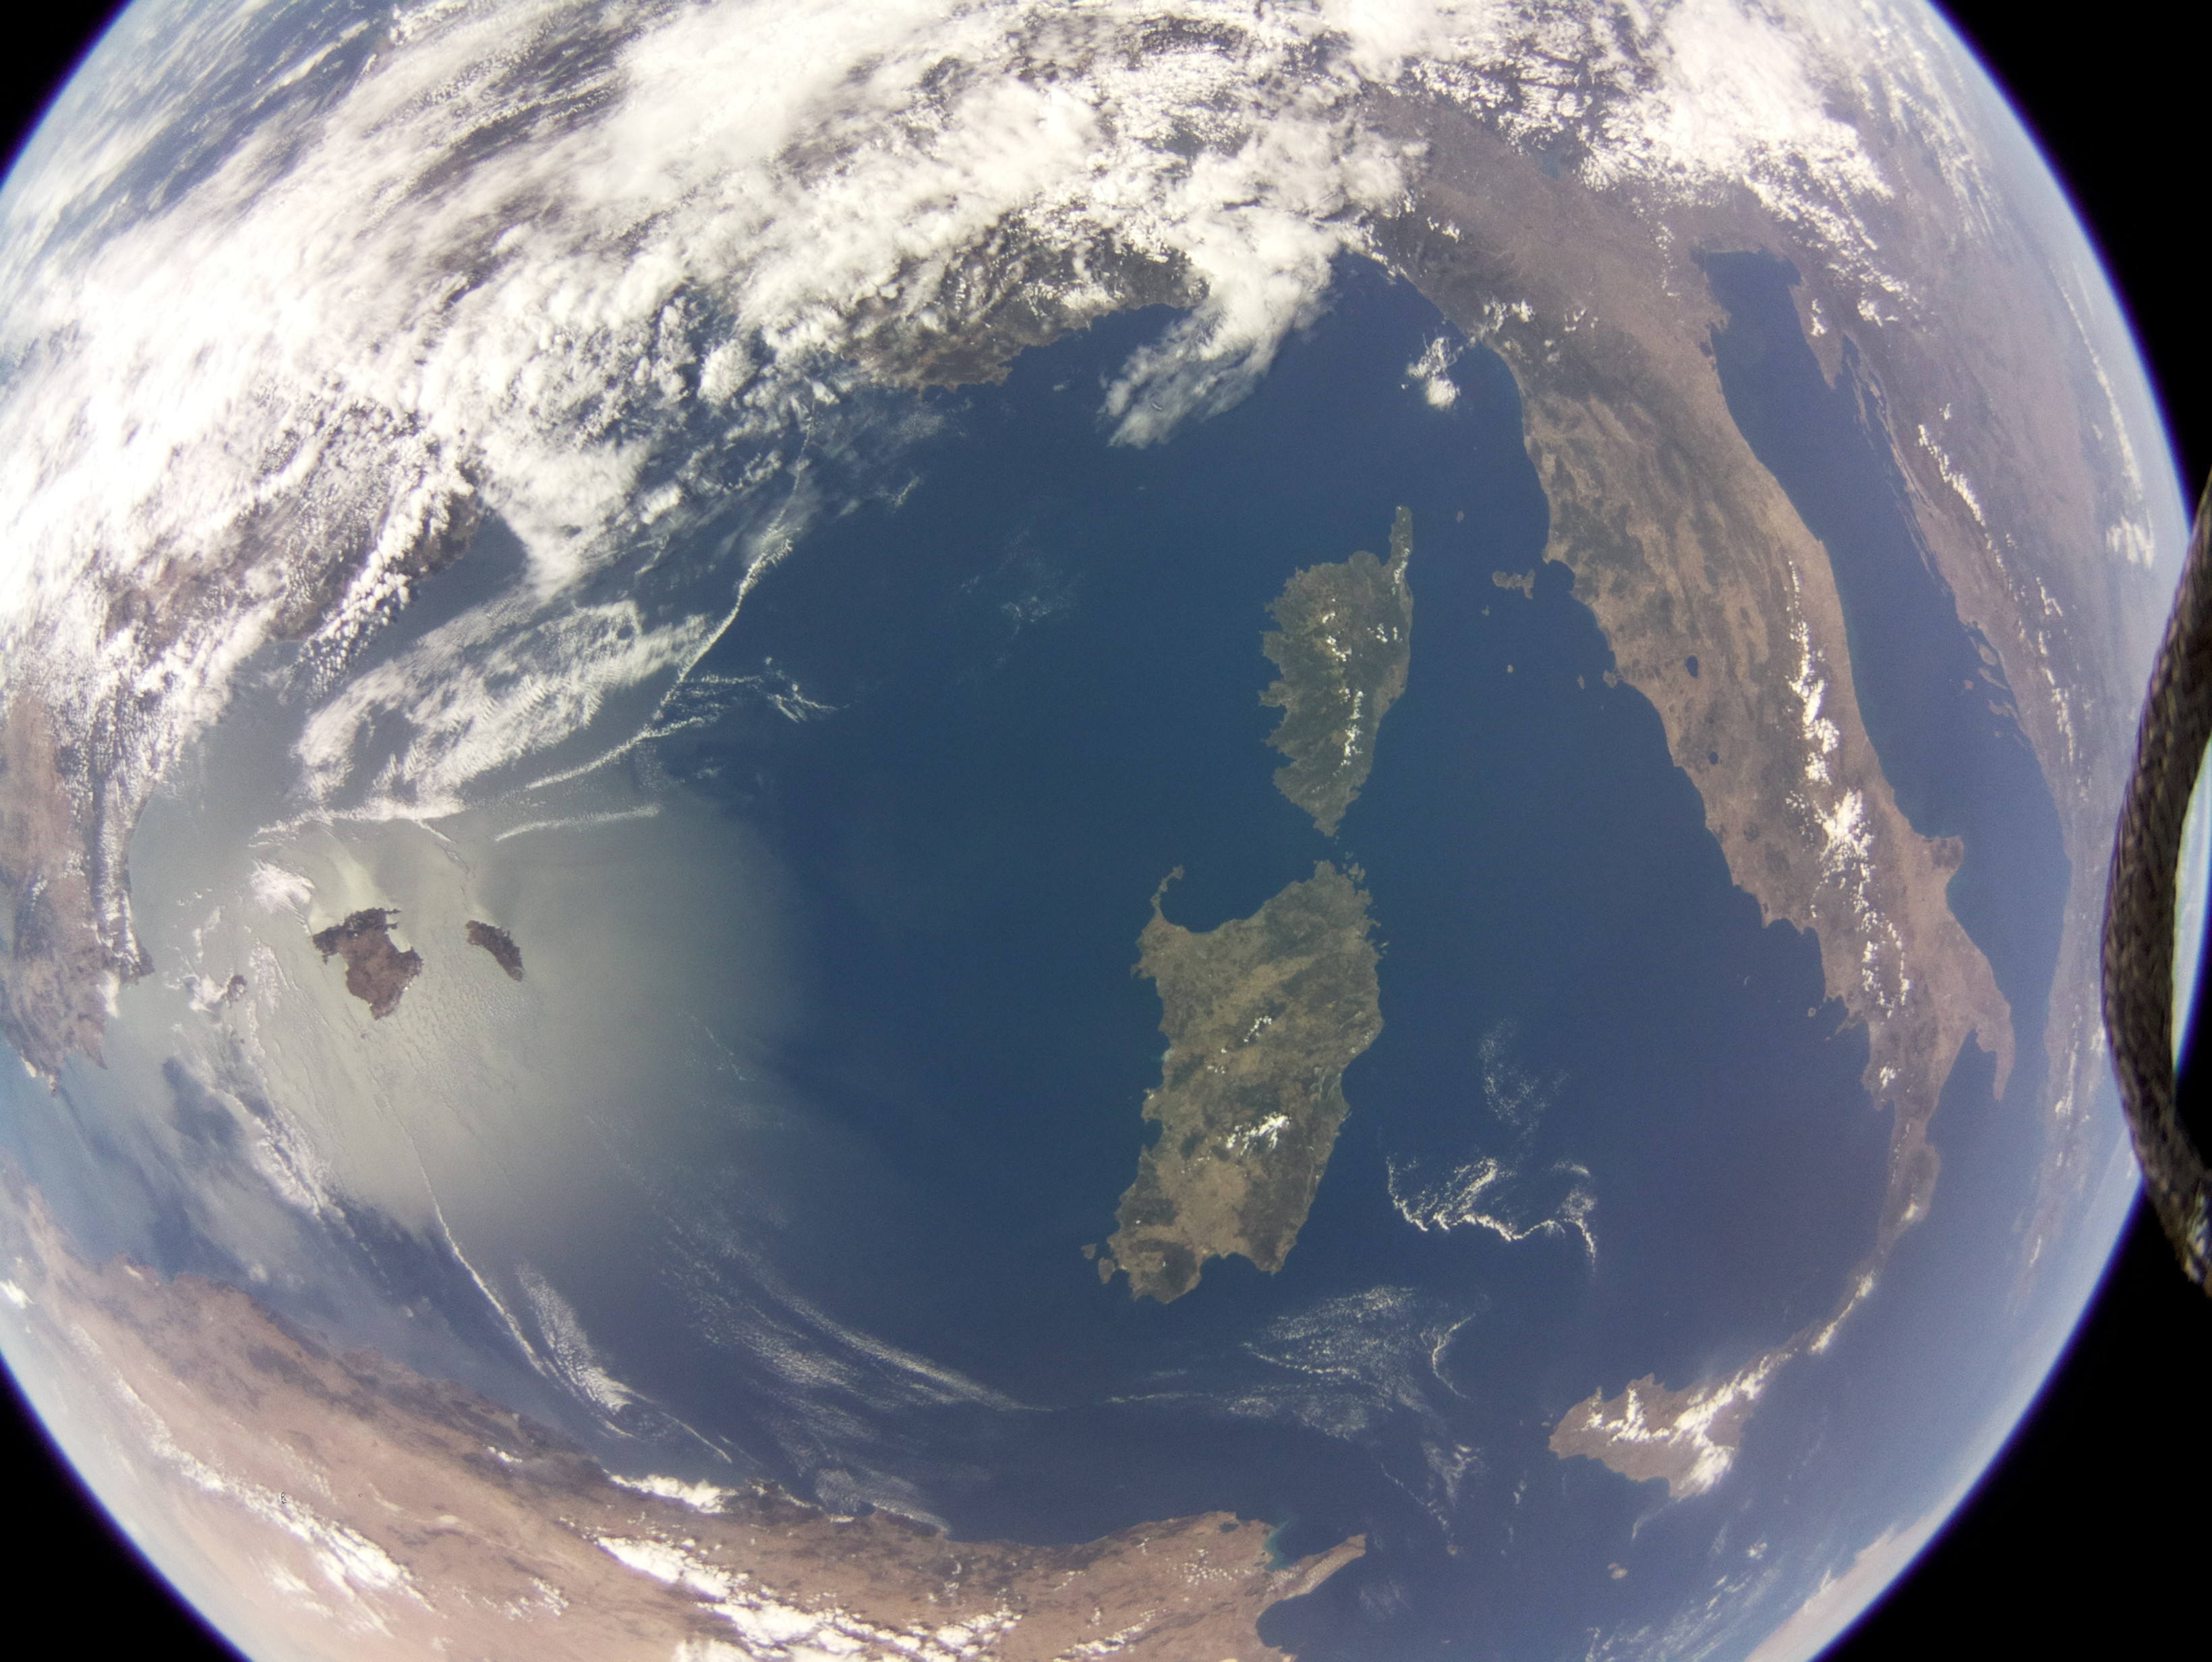 Image of the Mediterranean acquired by commercial grade Raspberry Pi camera on board SSTL's DoT-1 satellite on 19 August 2019. Credit SSTL.